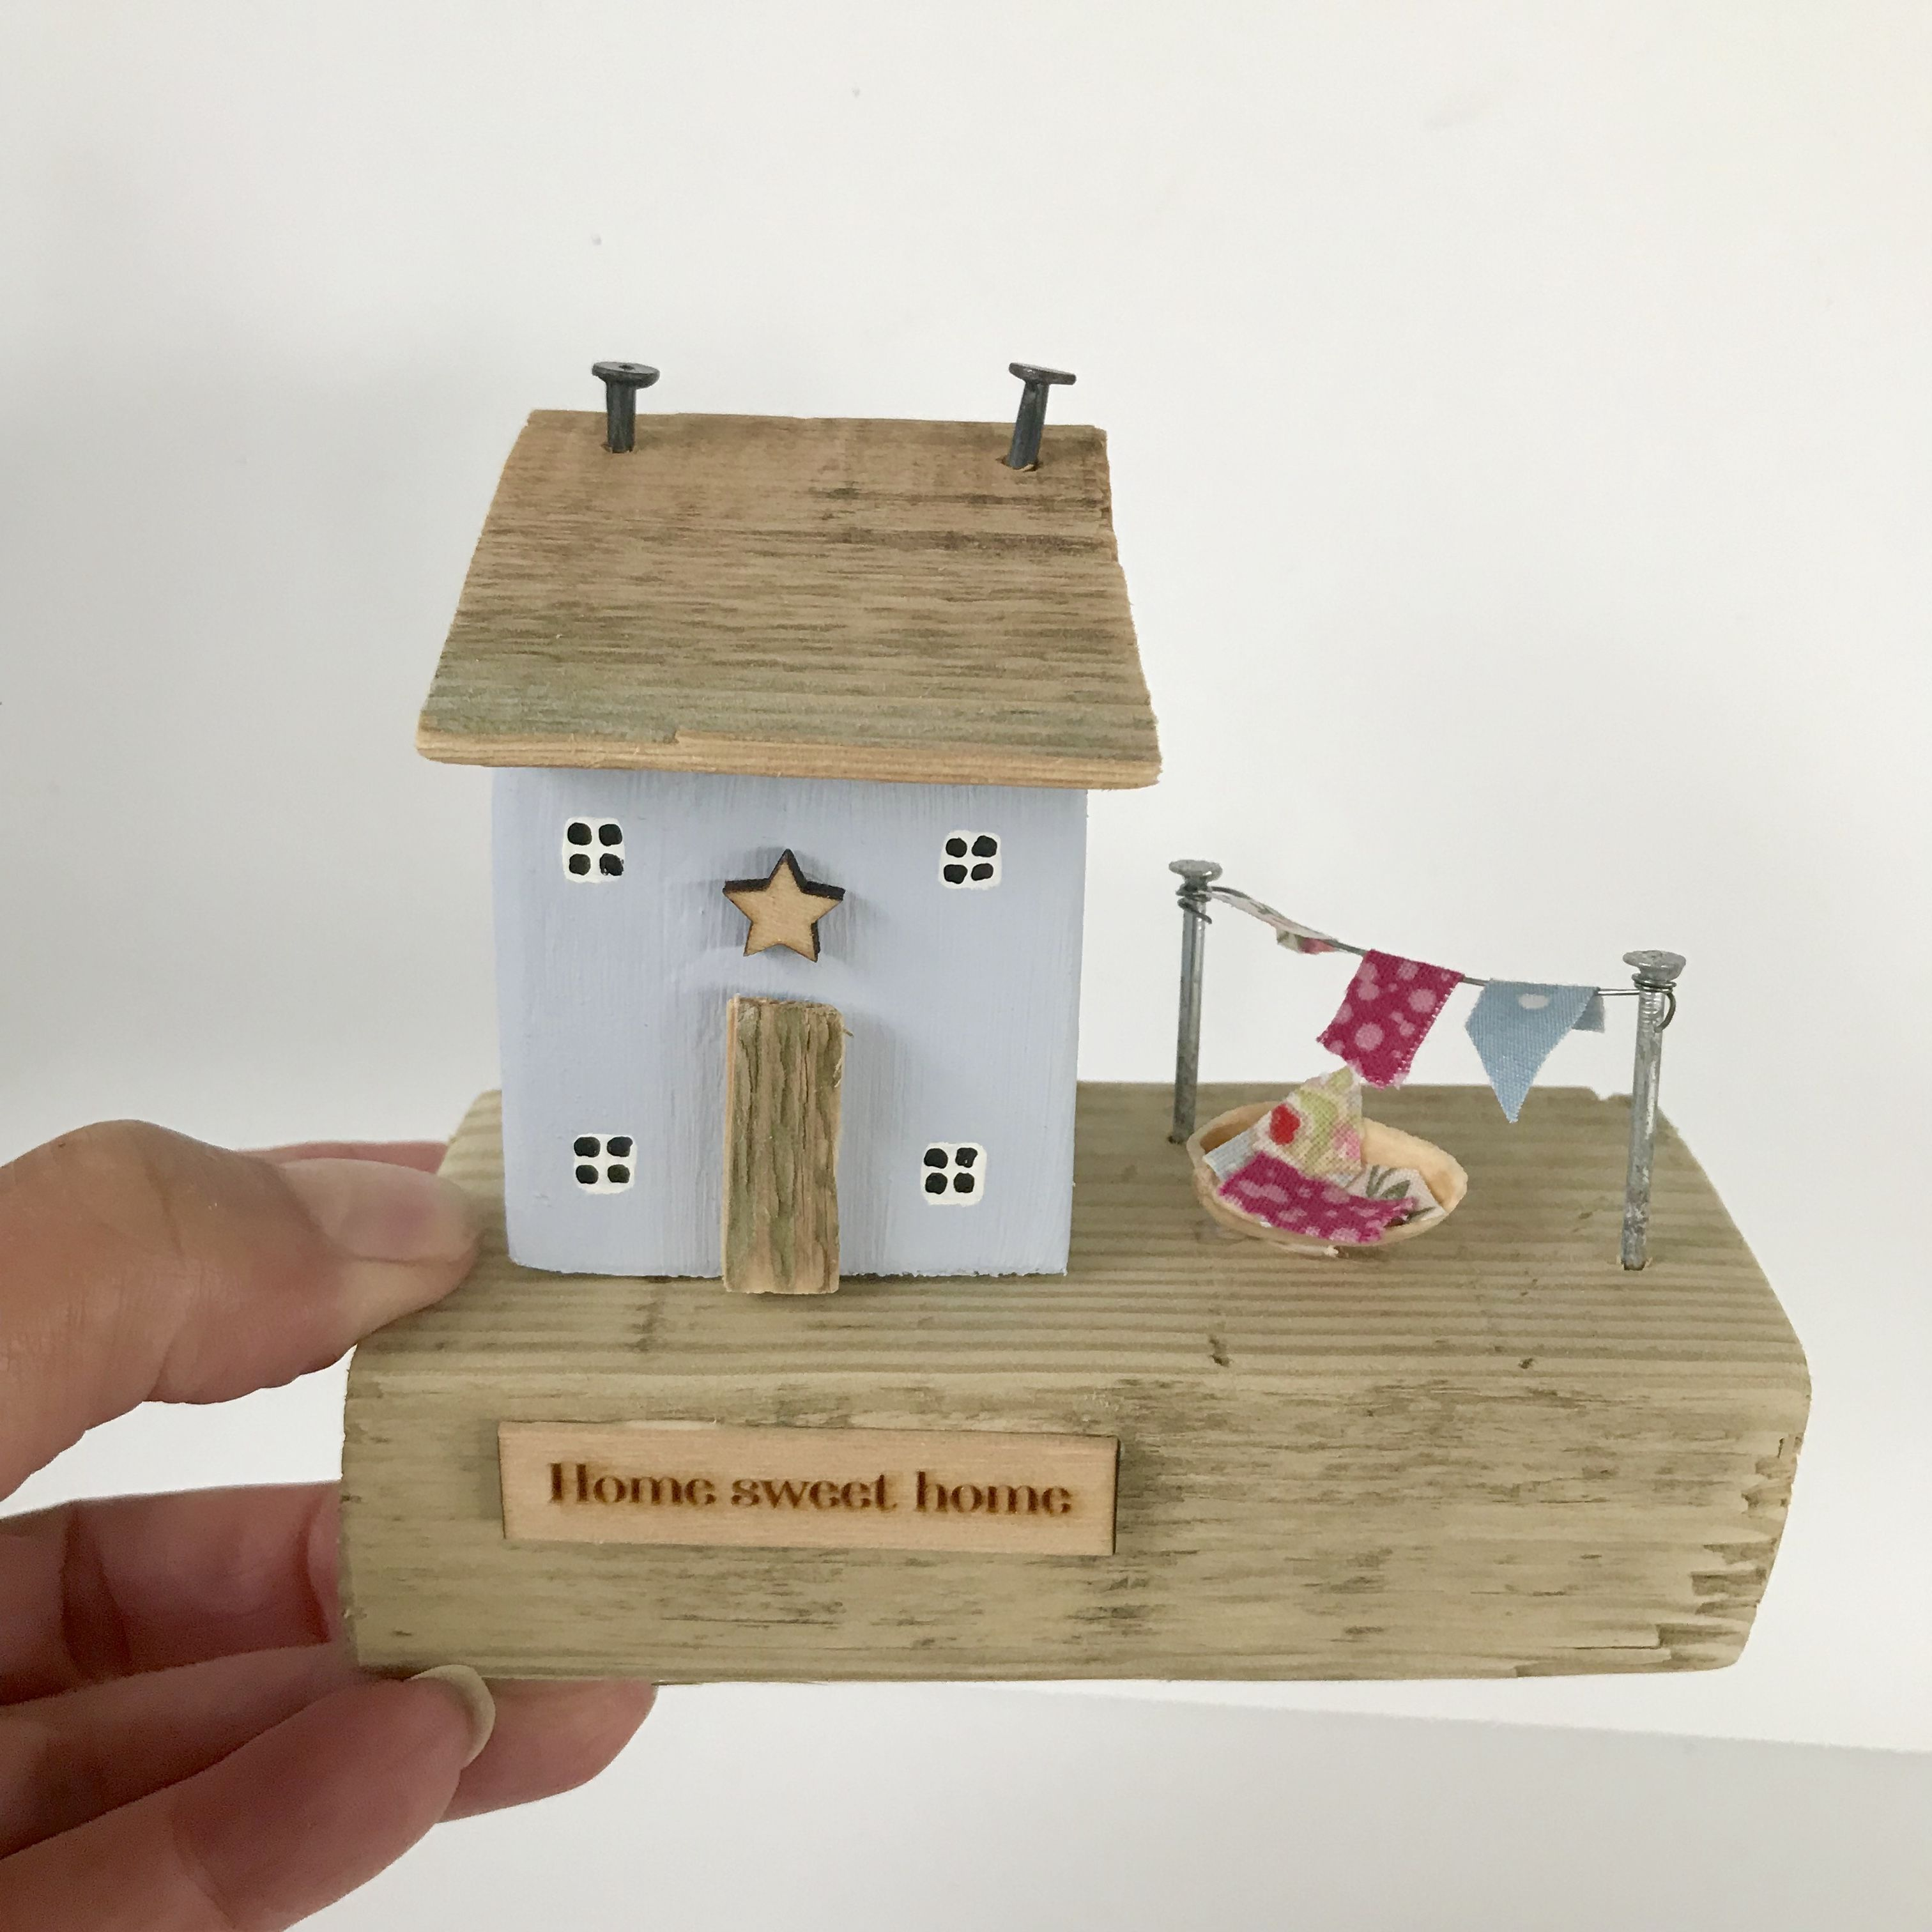 Pale Blue Little House Ornament Home Sweet Home Etsy House Ornaments Barn Wood Crafts Tiny House Ornament